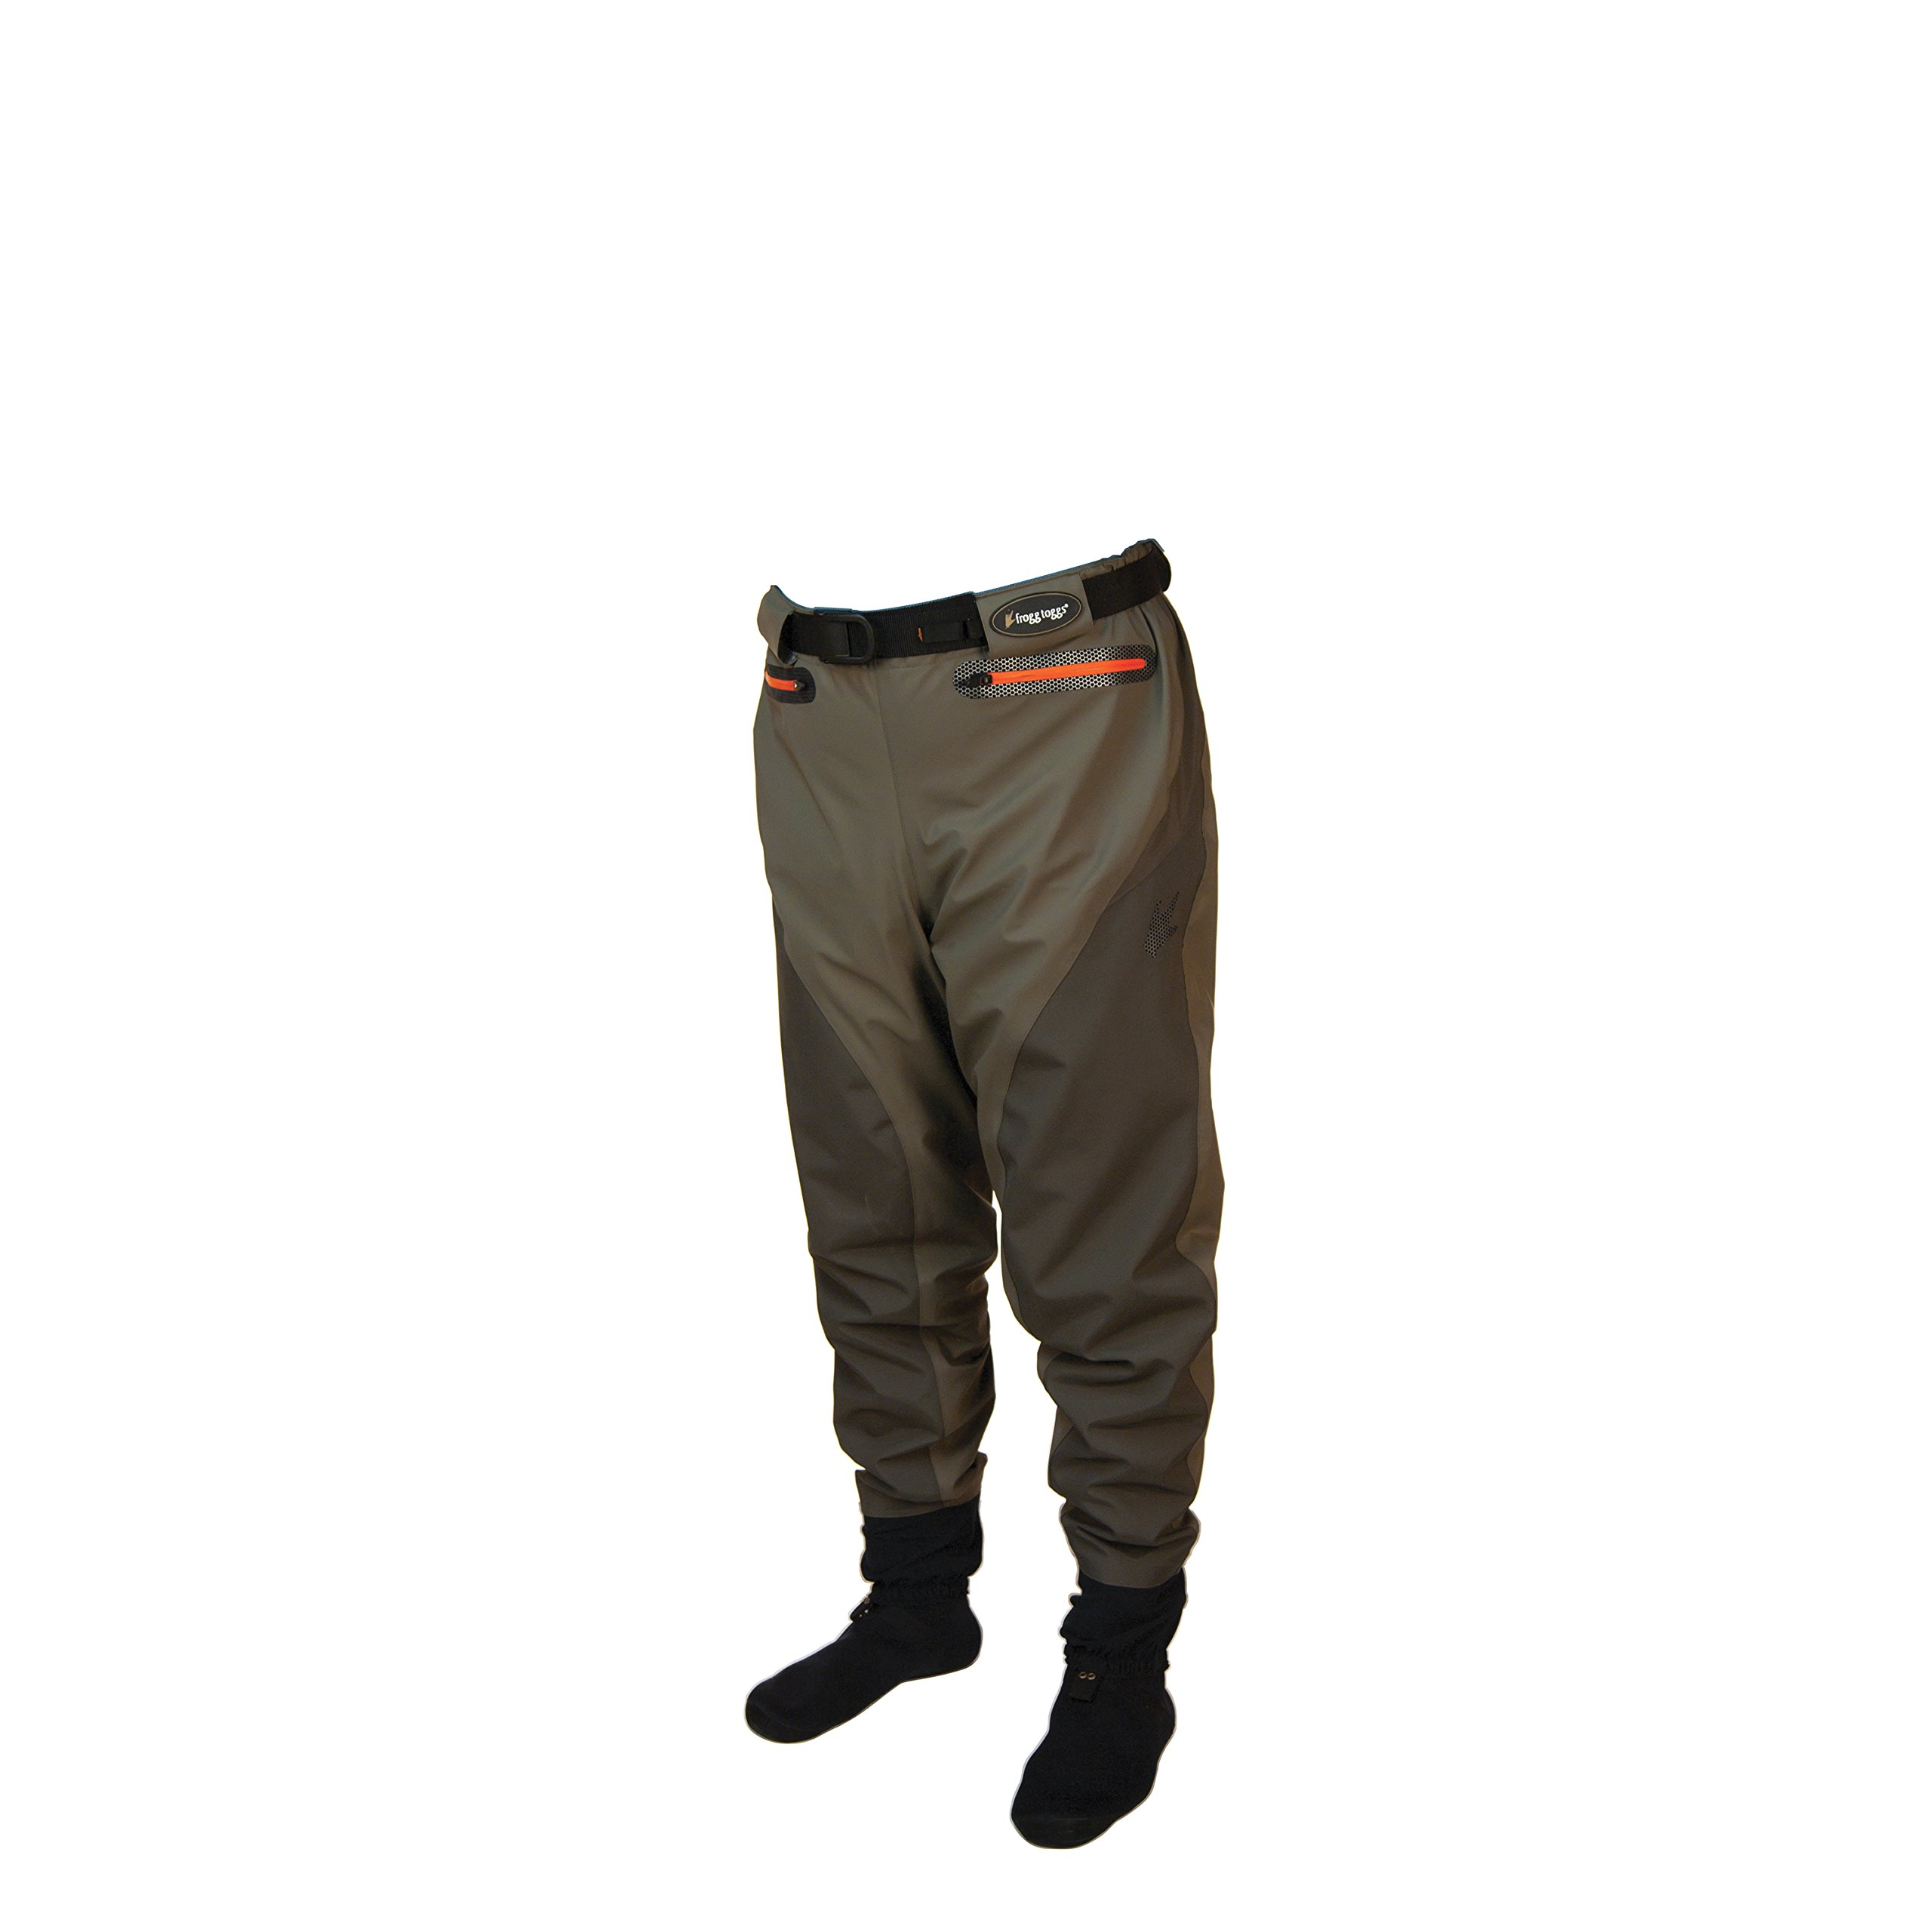 Frogg Toggs Pilot II Breathable Stocking Foot Guide Pants, Small, Stone/Taupe